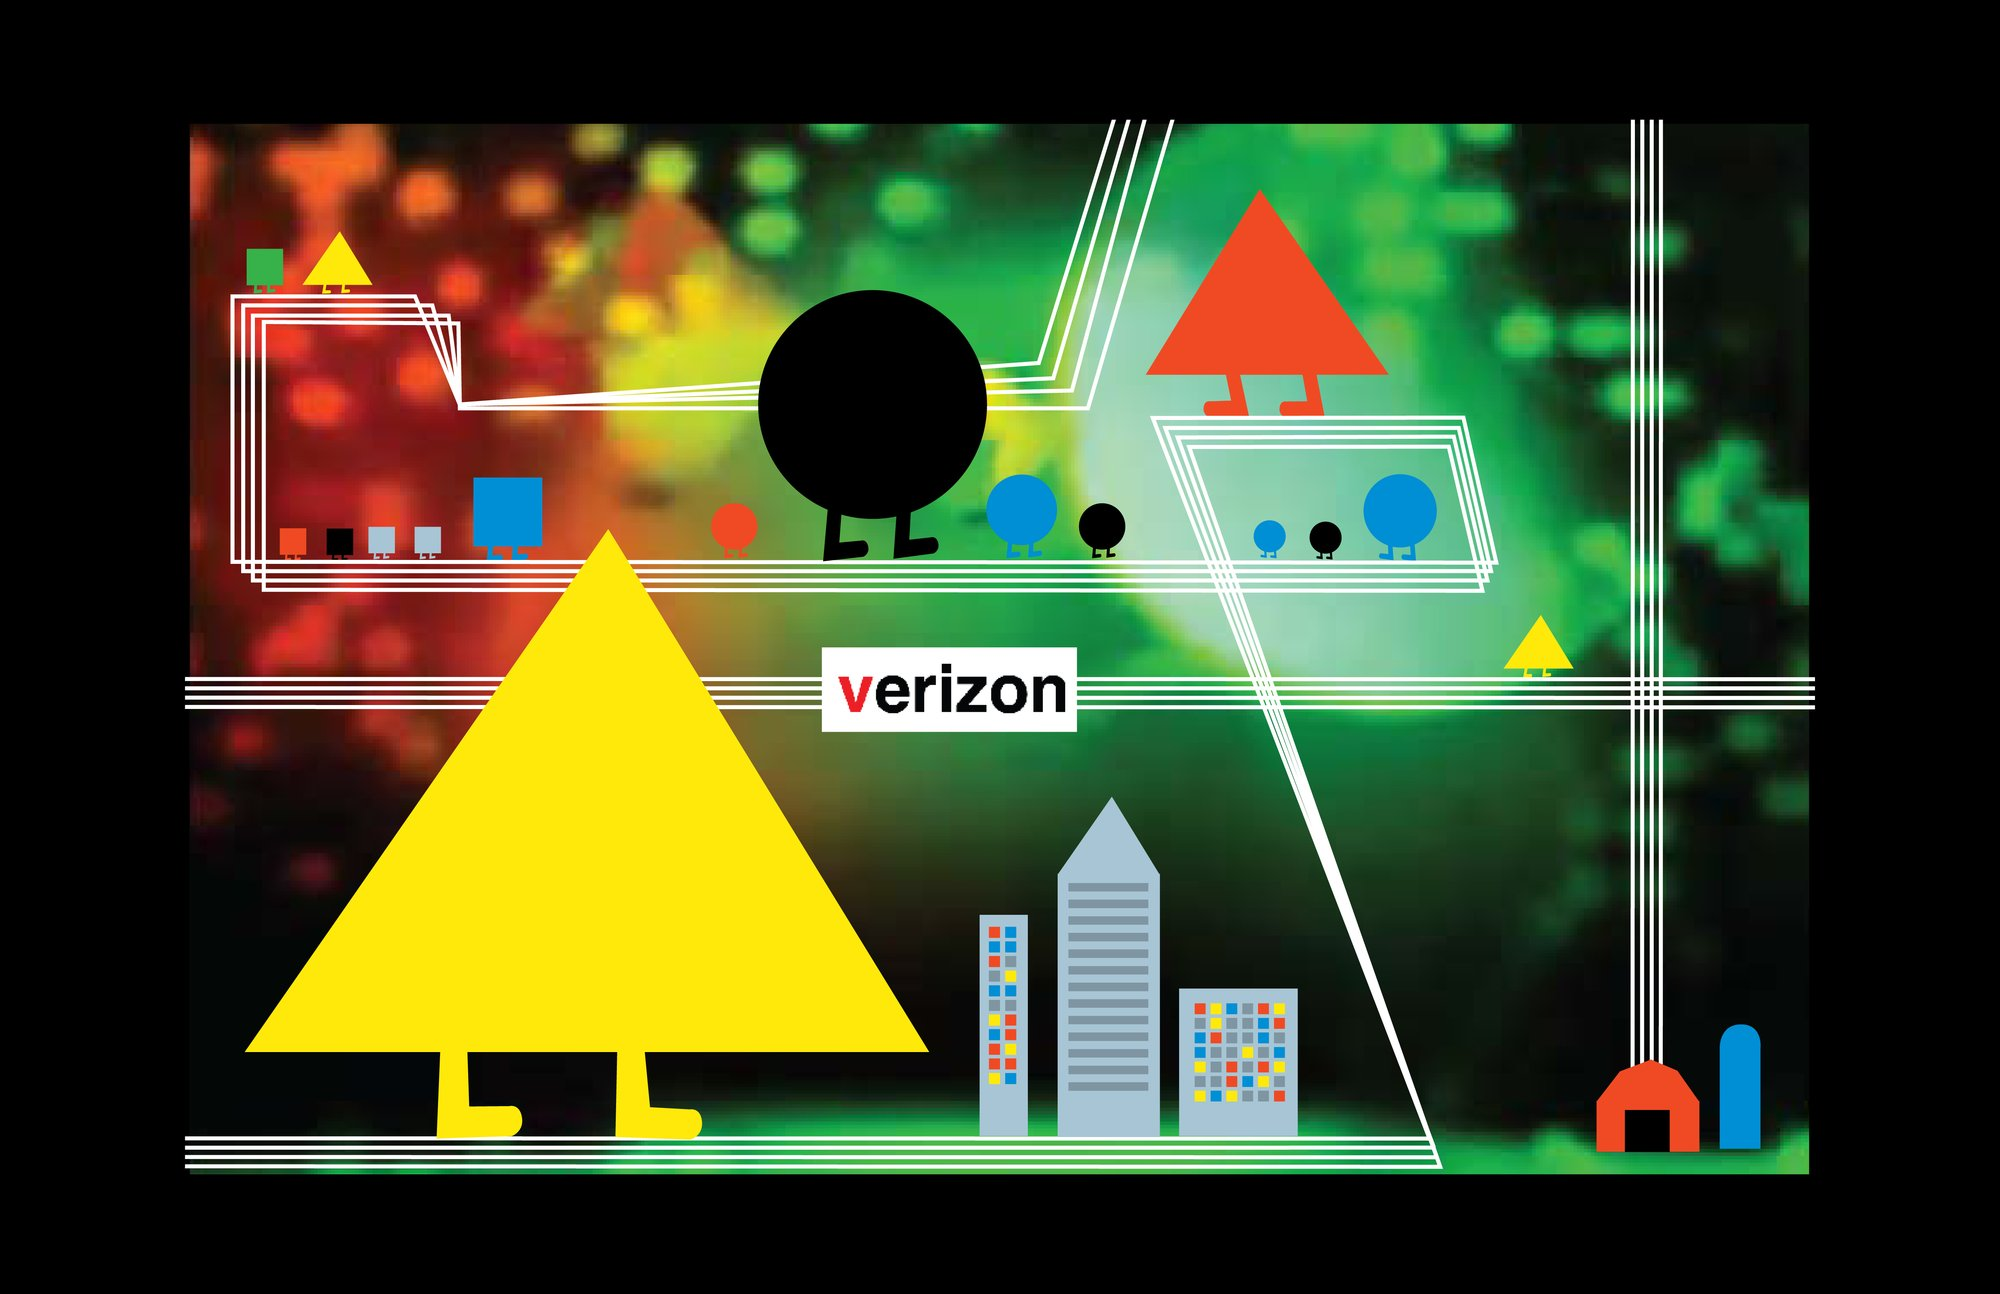 Verizon: Do More Amazing - exploration 6